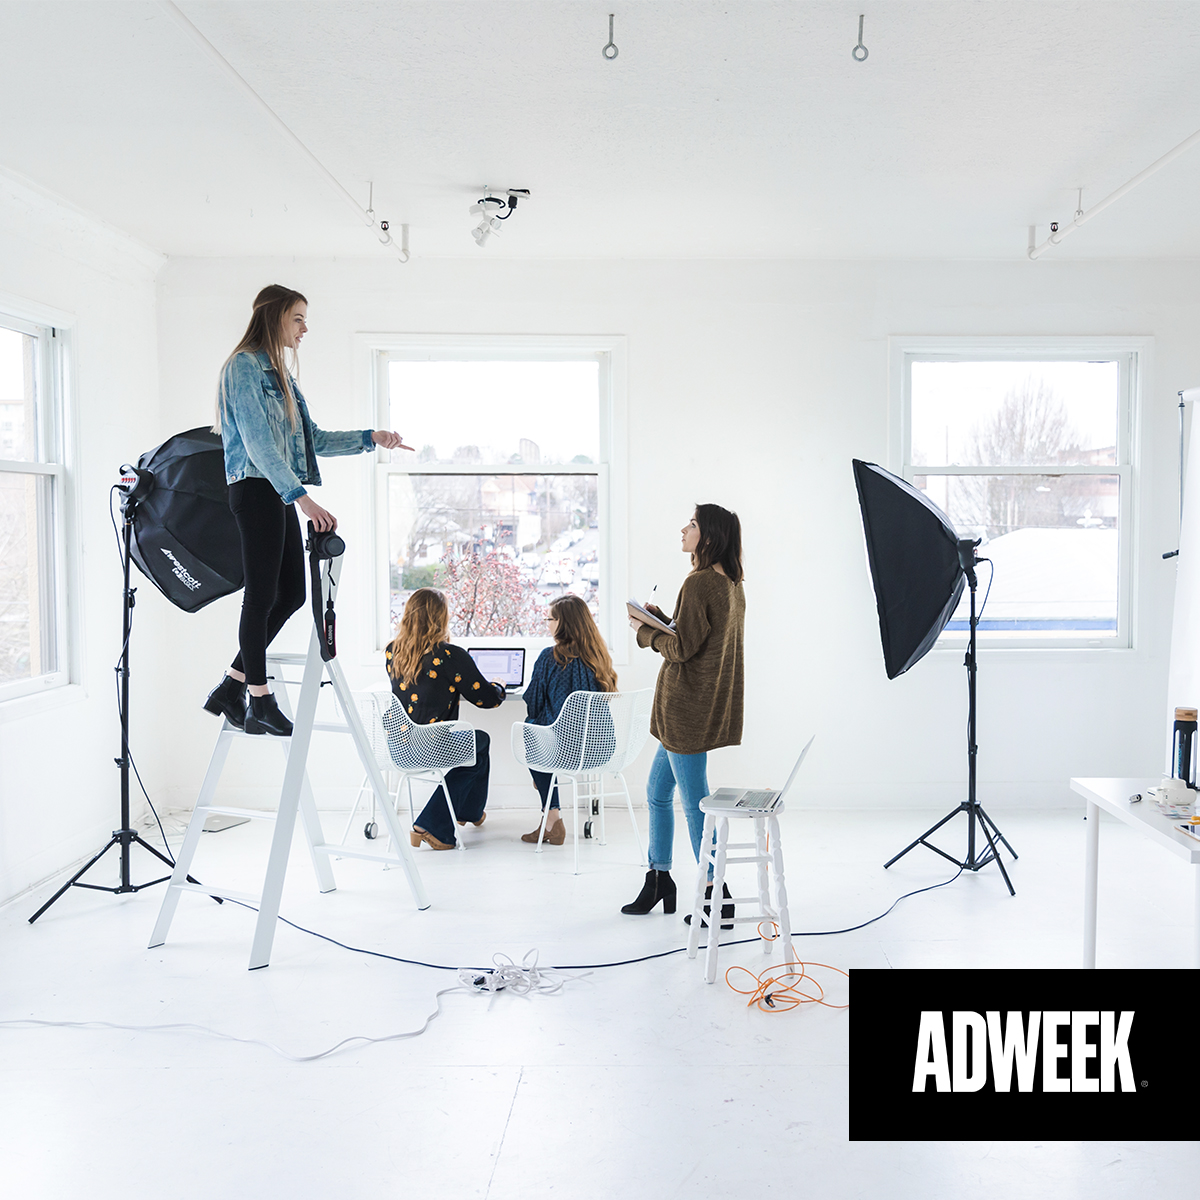 Coming to Terms With the Realities of Working in Advertising by Sparkloft ACD, Chris Moore